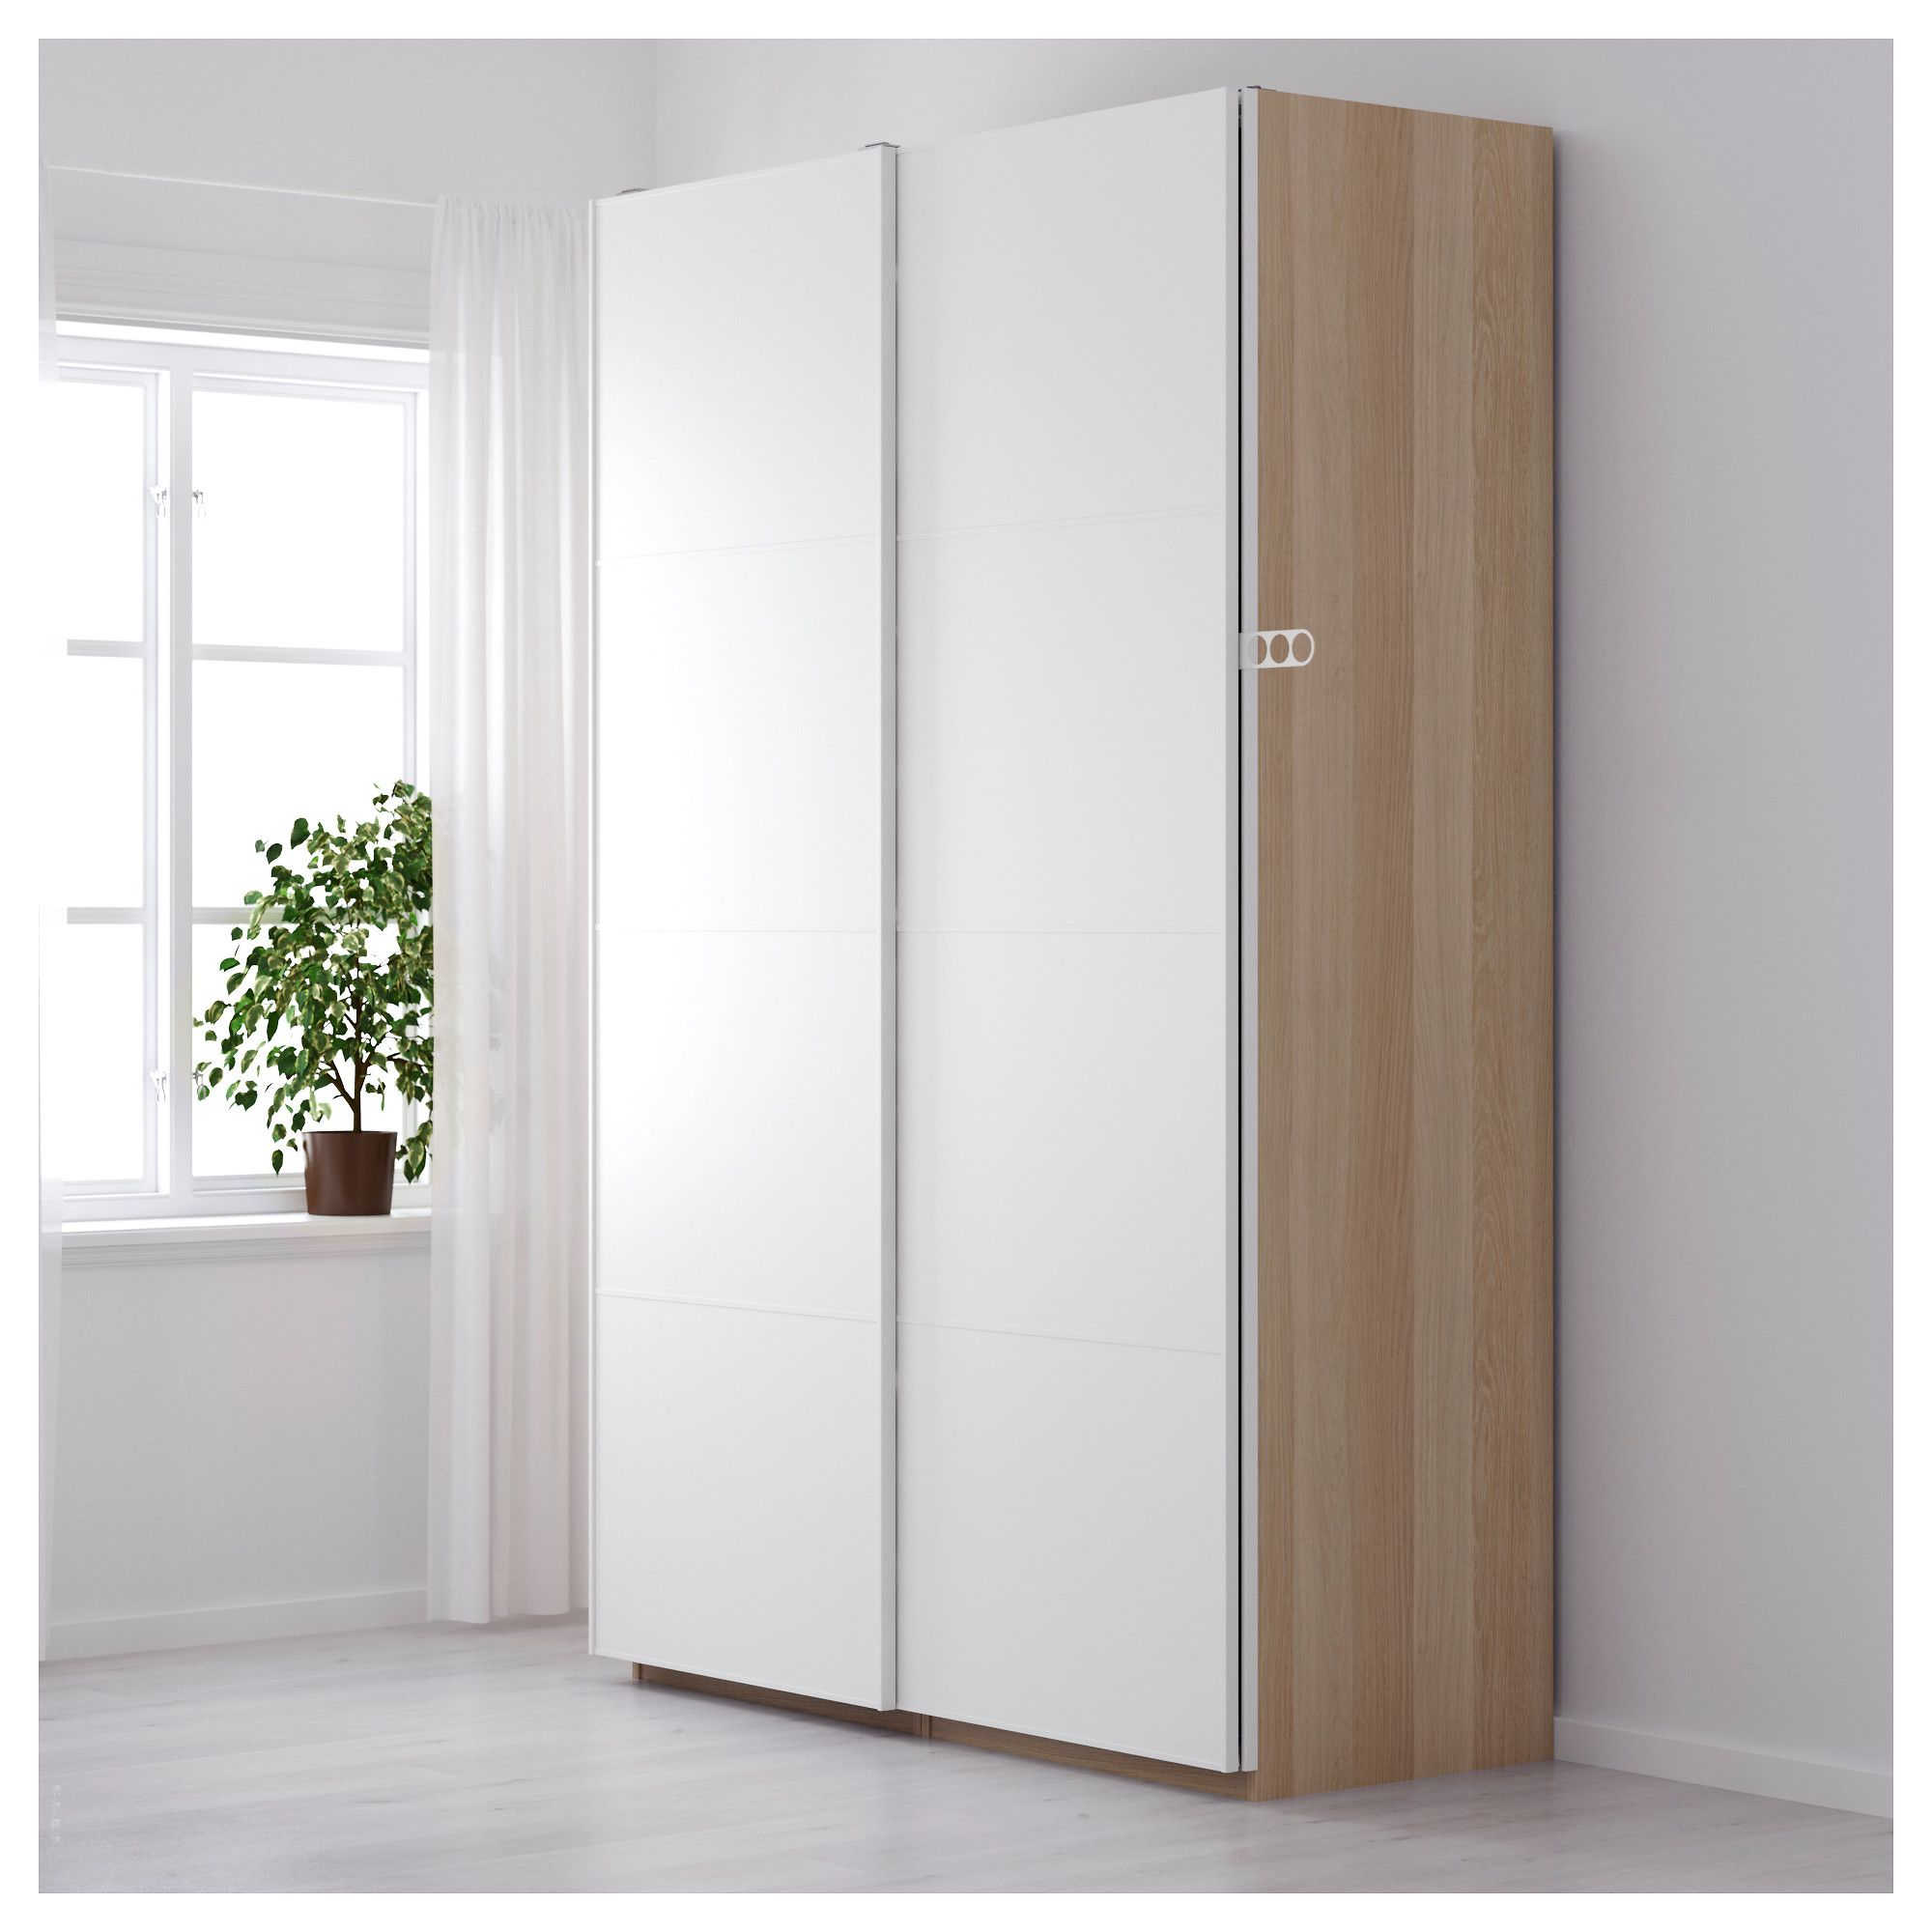 Furniture Home Furnishings Find Your Inspiration Ikea Pax Ikea Craft Room Pax Wardrobe